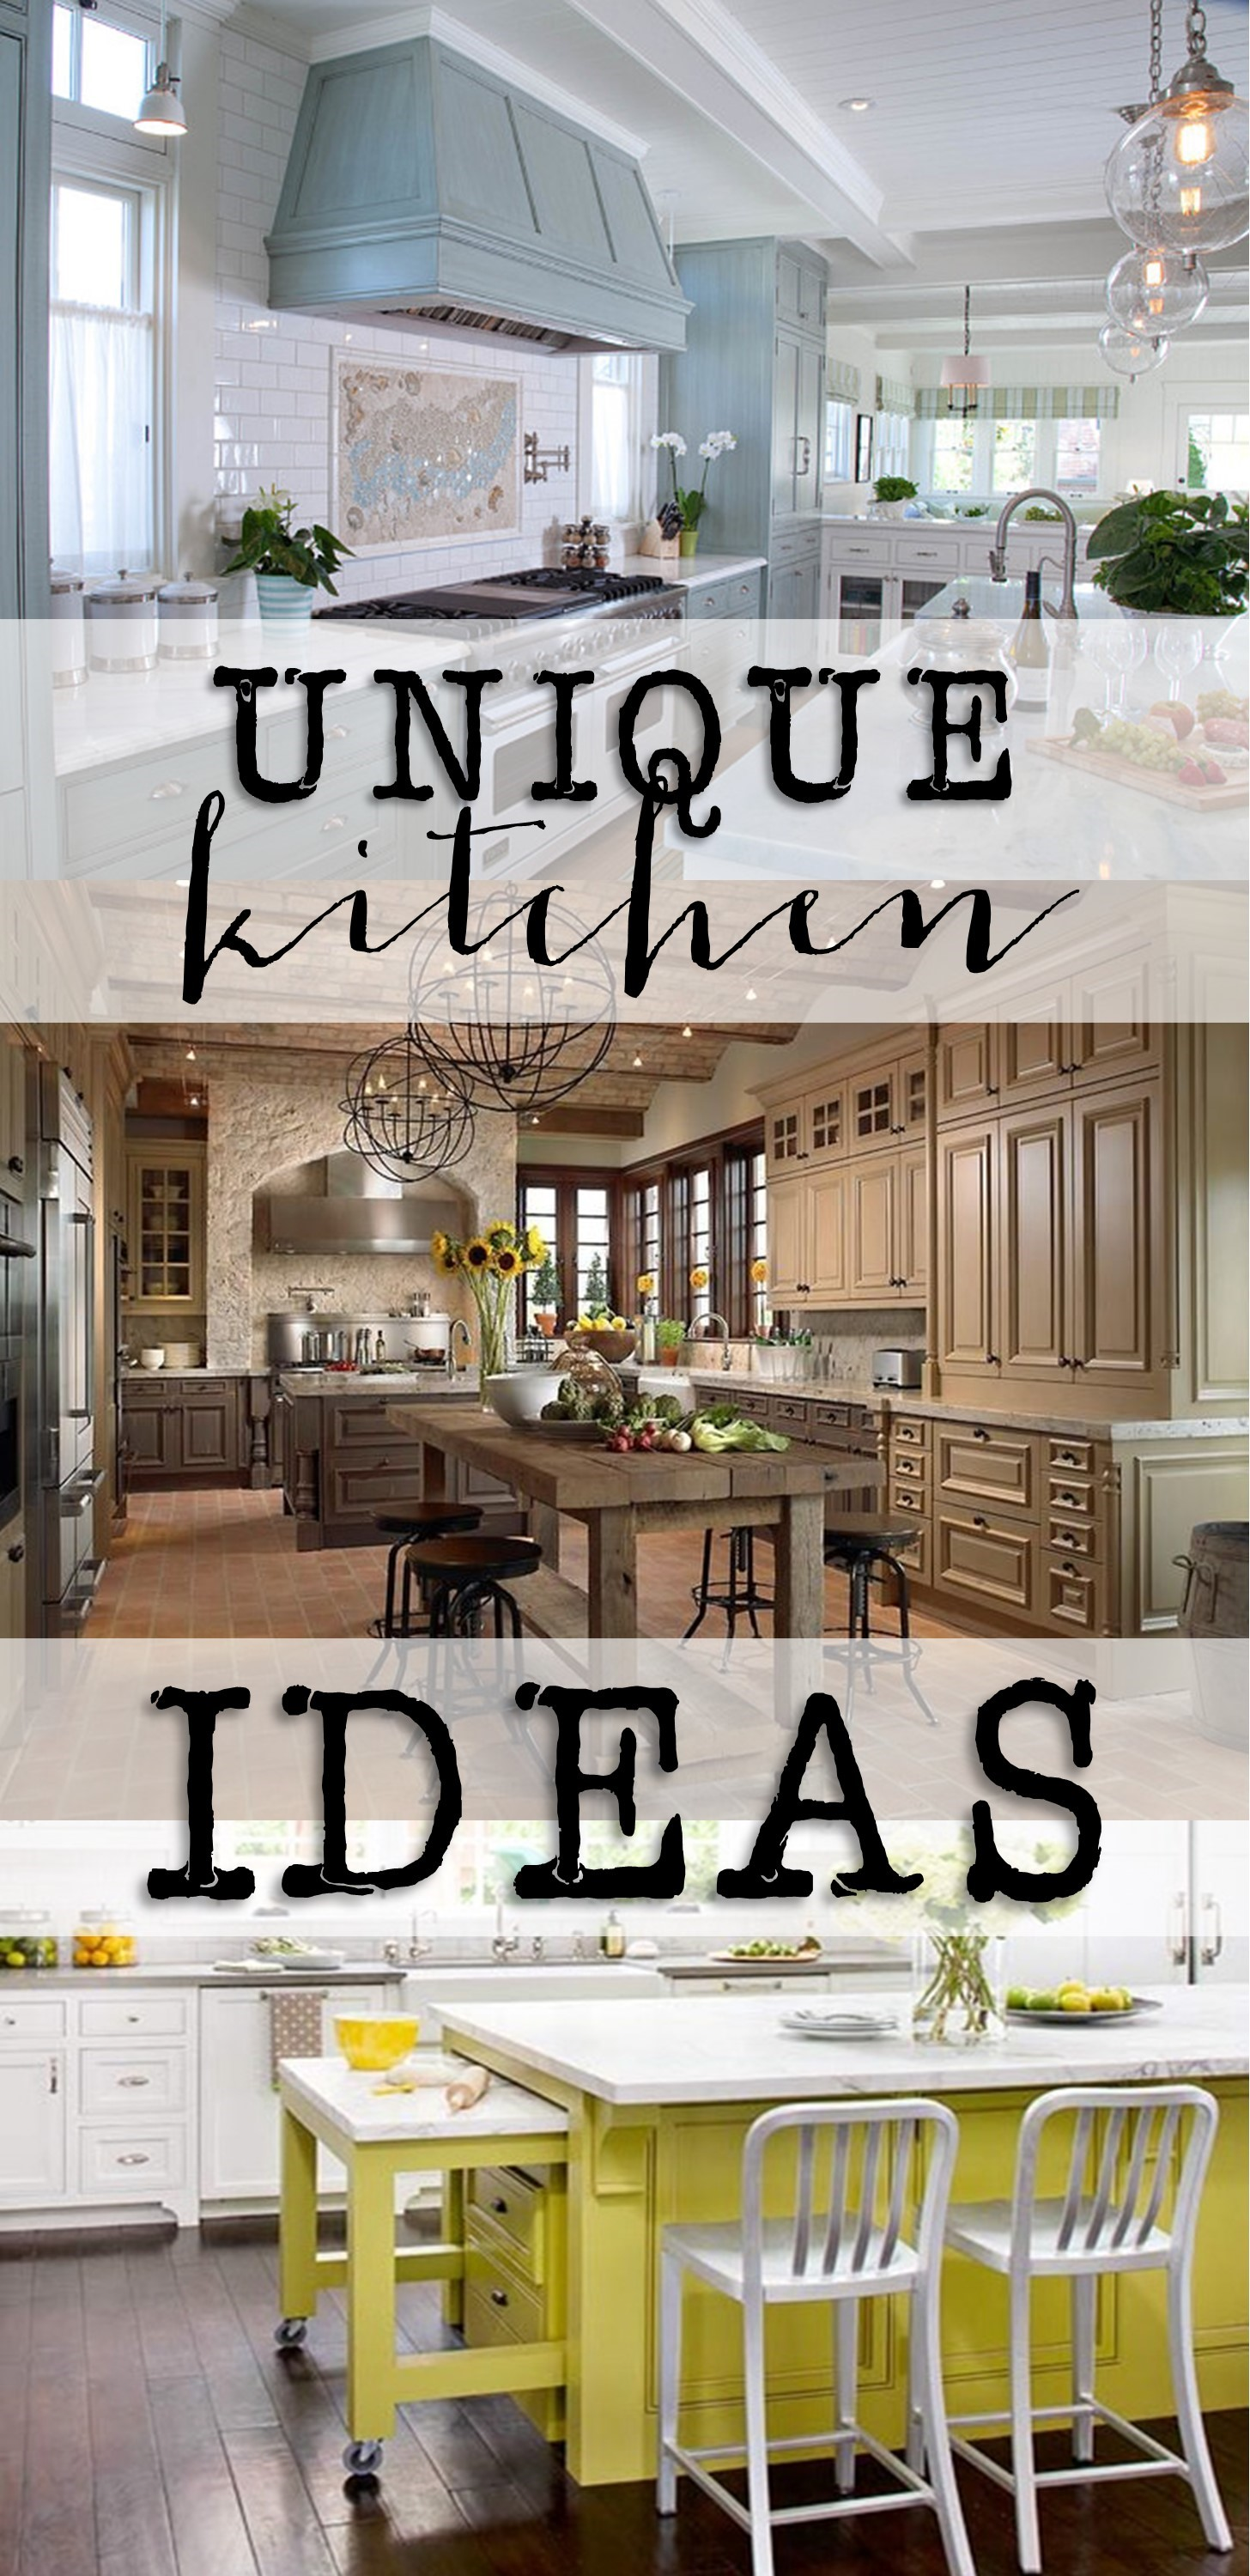 Unique Kitchen Ideas (13)